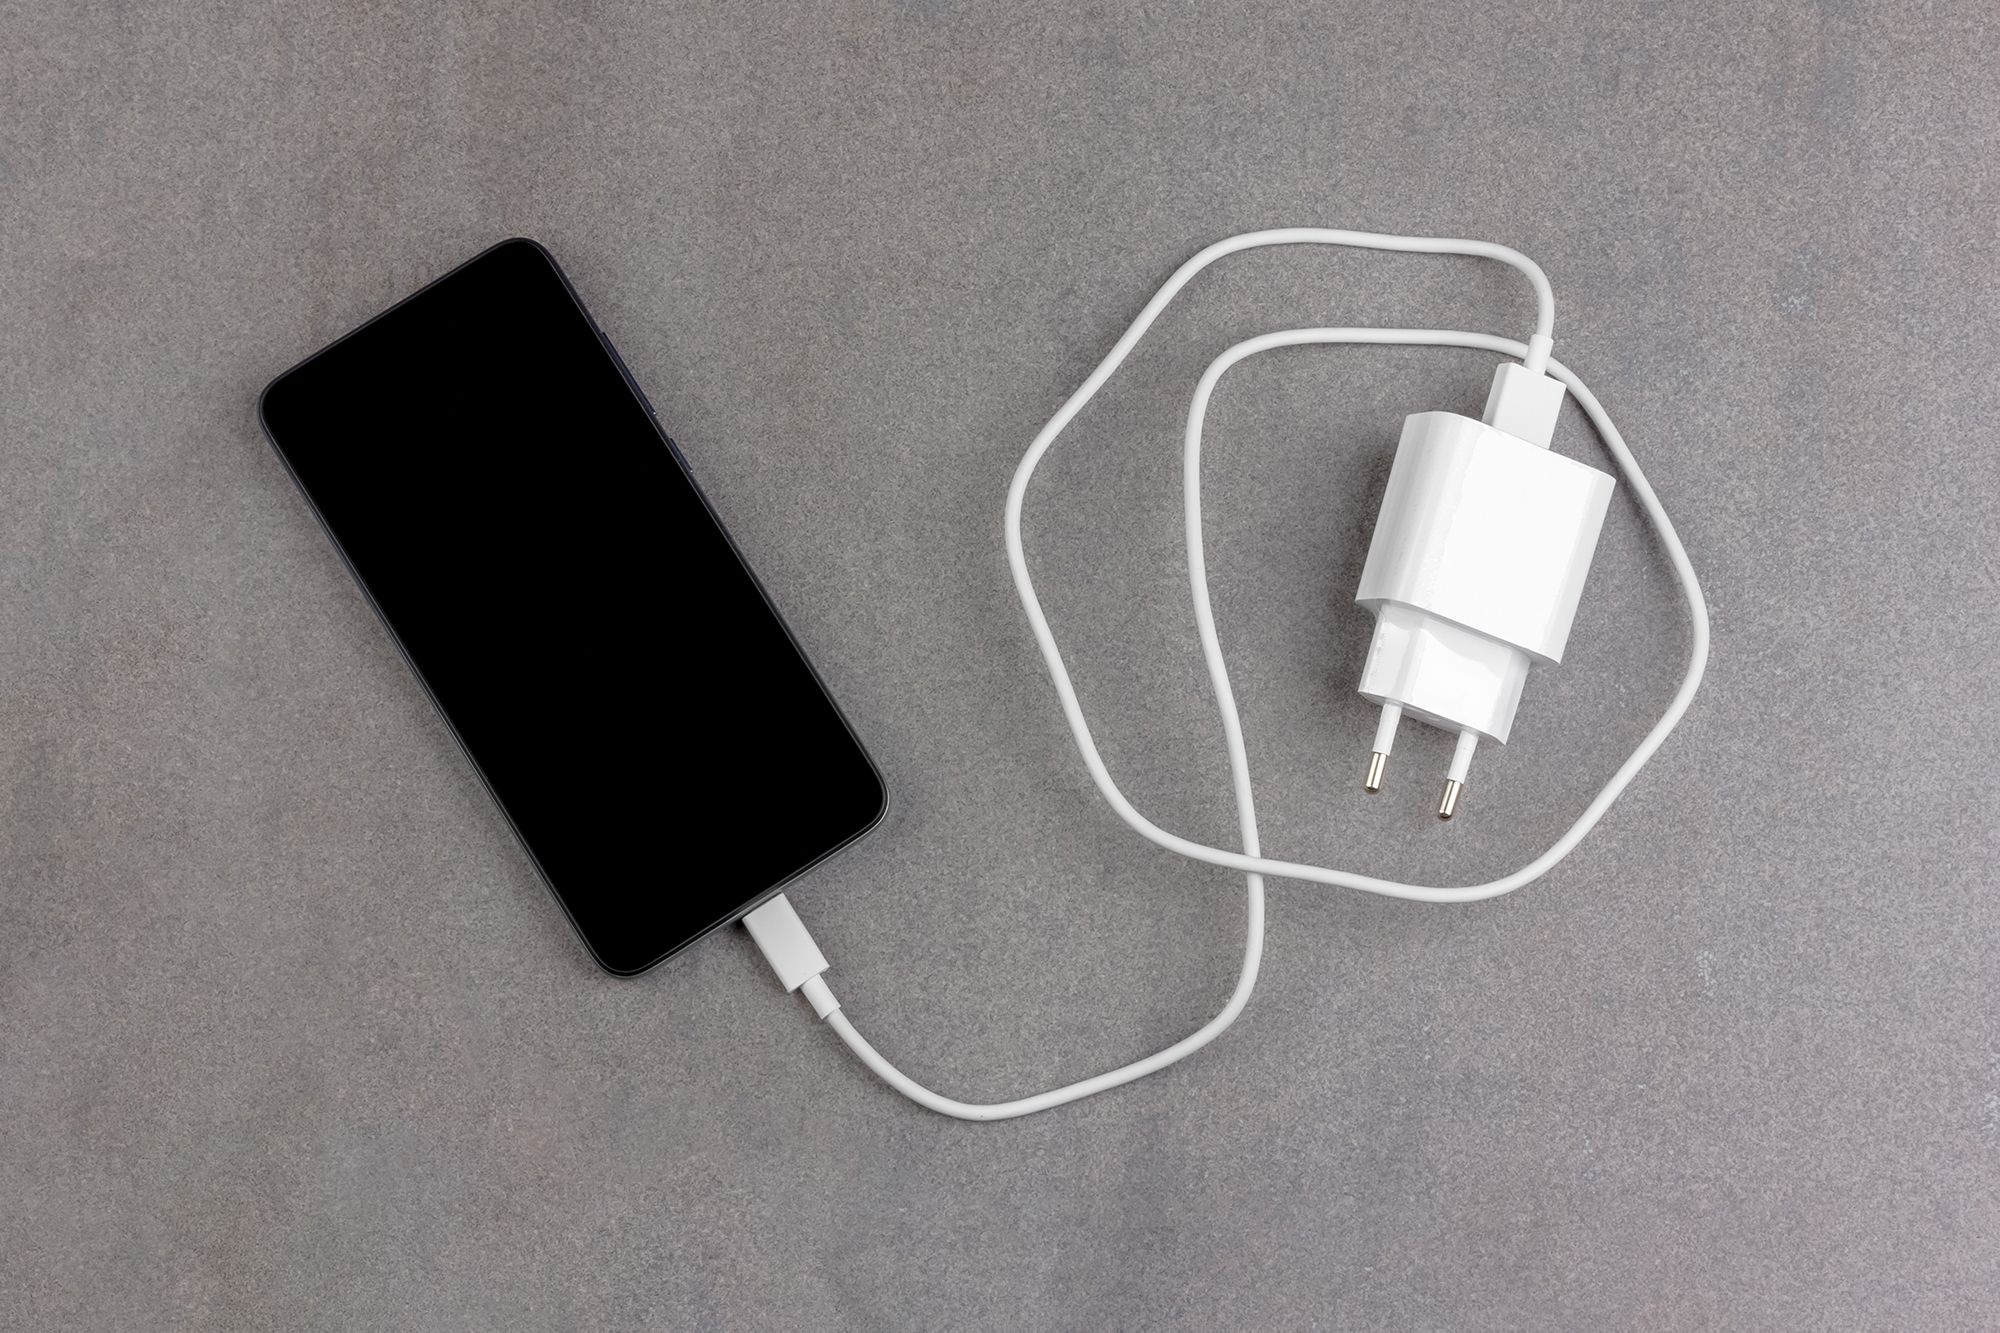 Samsung Galaxy S21 regulatory filing –– no power adapters included